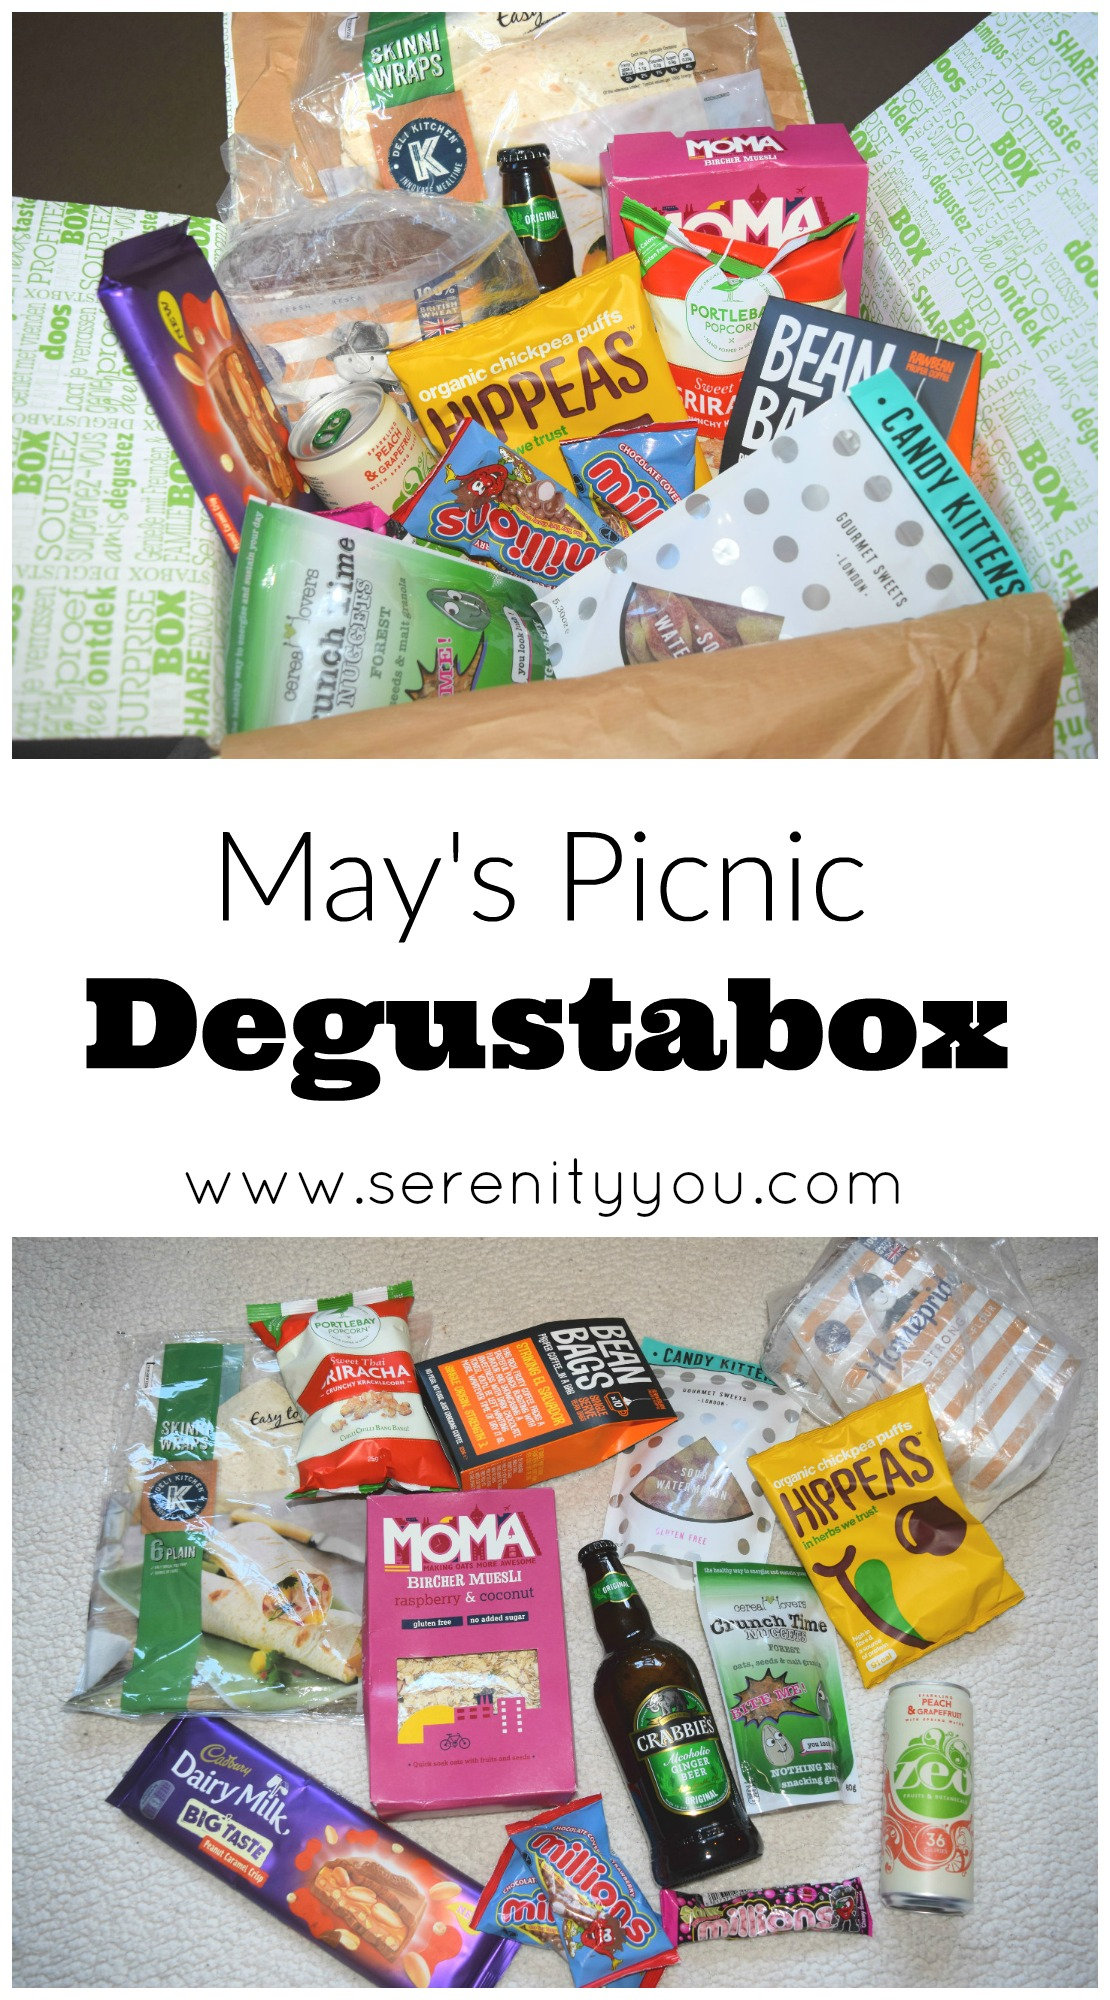 May's Picnic Degustabox Review